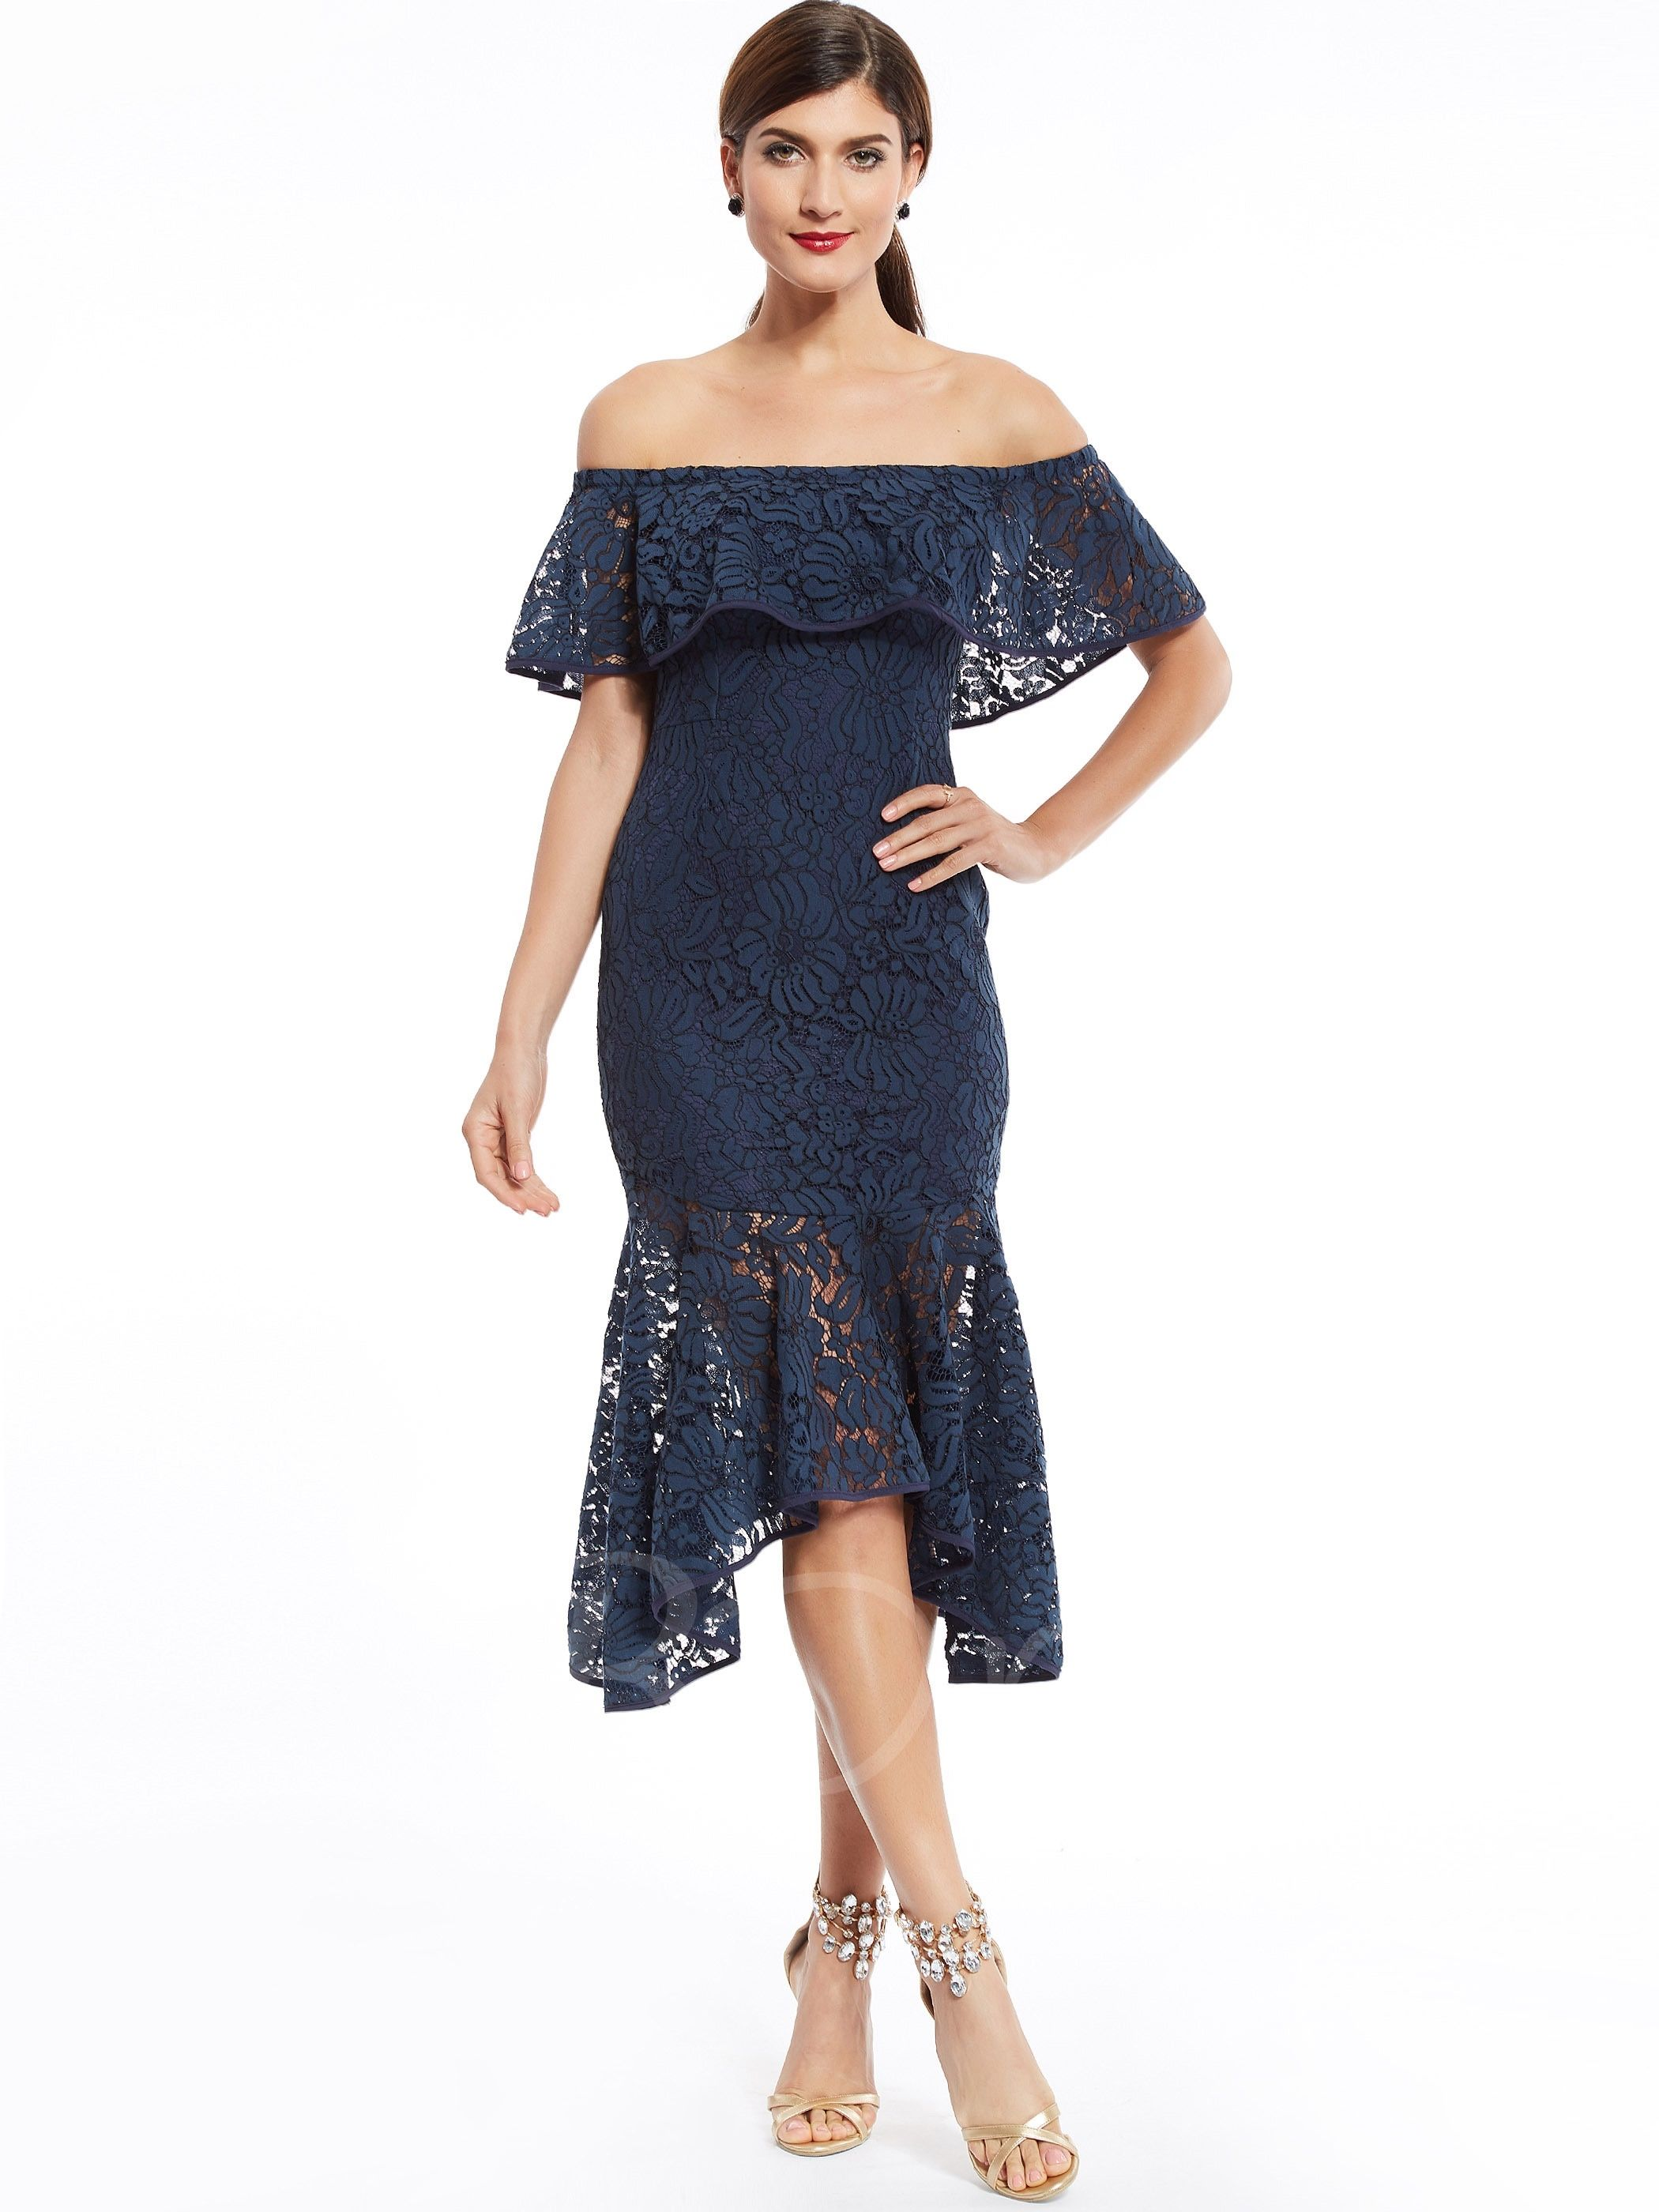 Off The Shoulder Lace Mermaid Evening Dress Mermaid Evening Dresses Short Cocktail Dress Cocktail Dress Lace